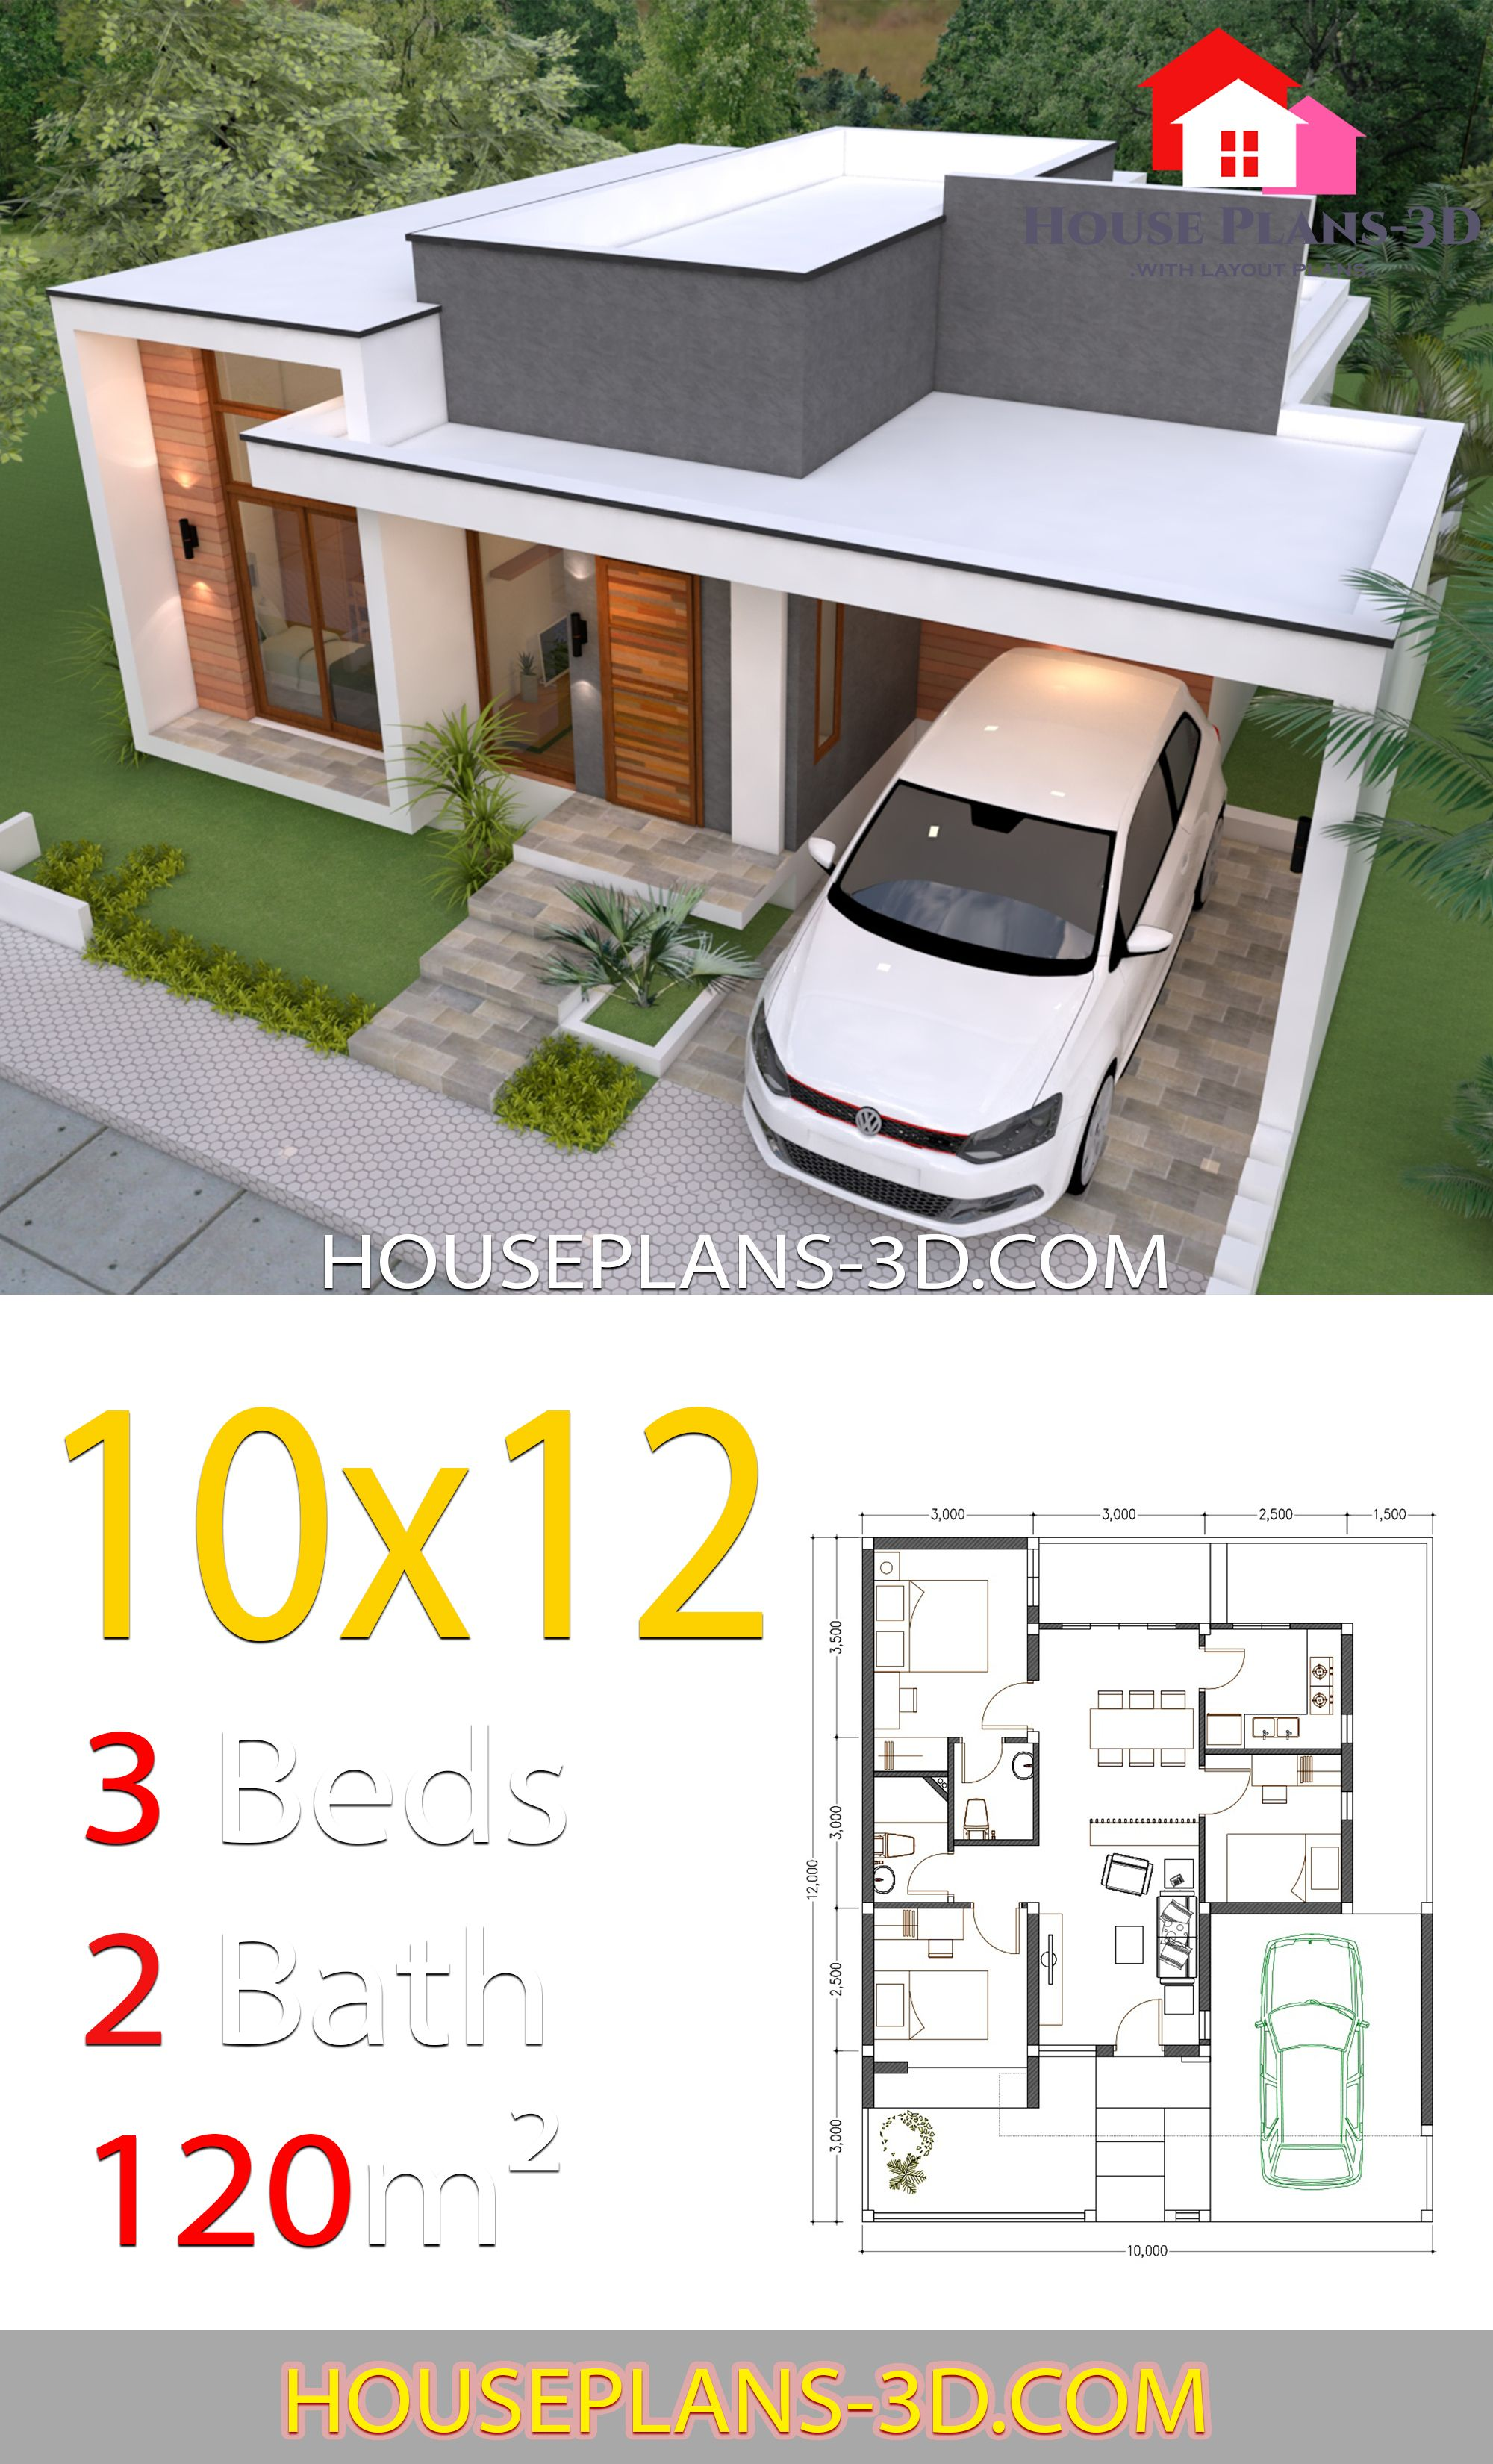 House Design 10x12 With 3 Bedrooms Terrace Roof House Plans 3d In 2020 House Plans Modern House Plans House Construction Plan